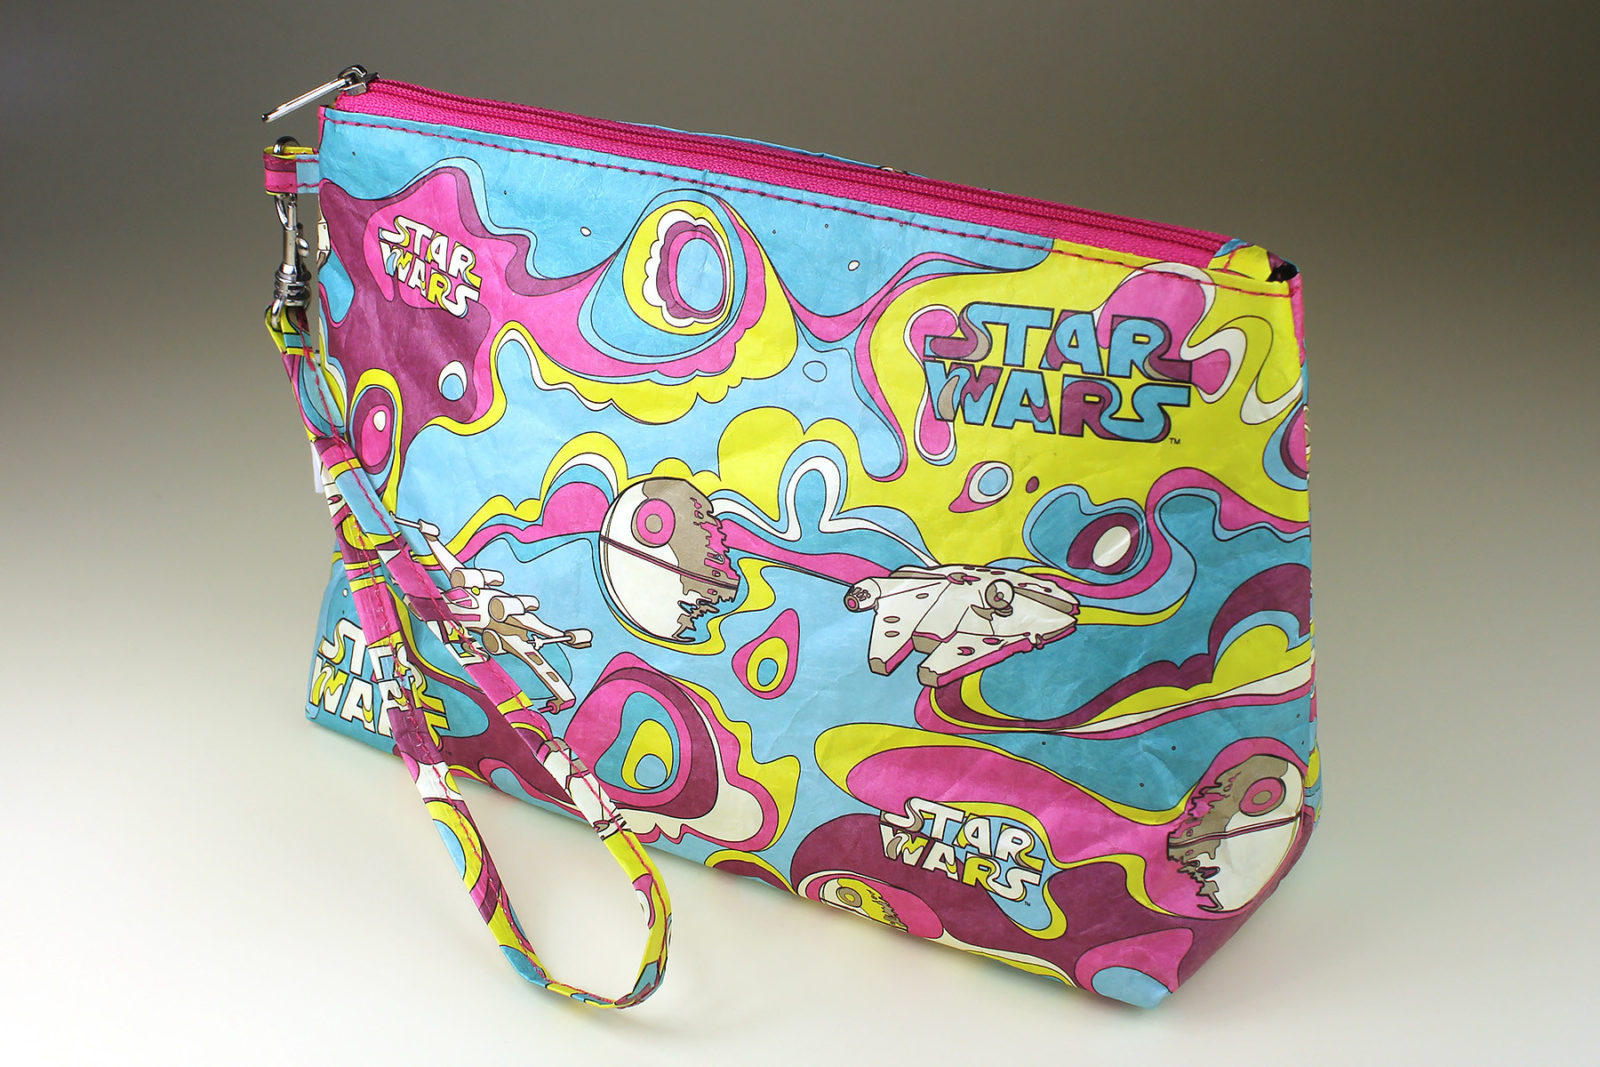 Review – Dynomighty Star Wars wristlet